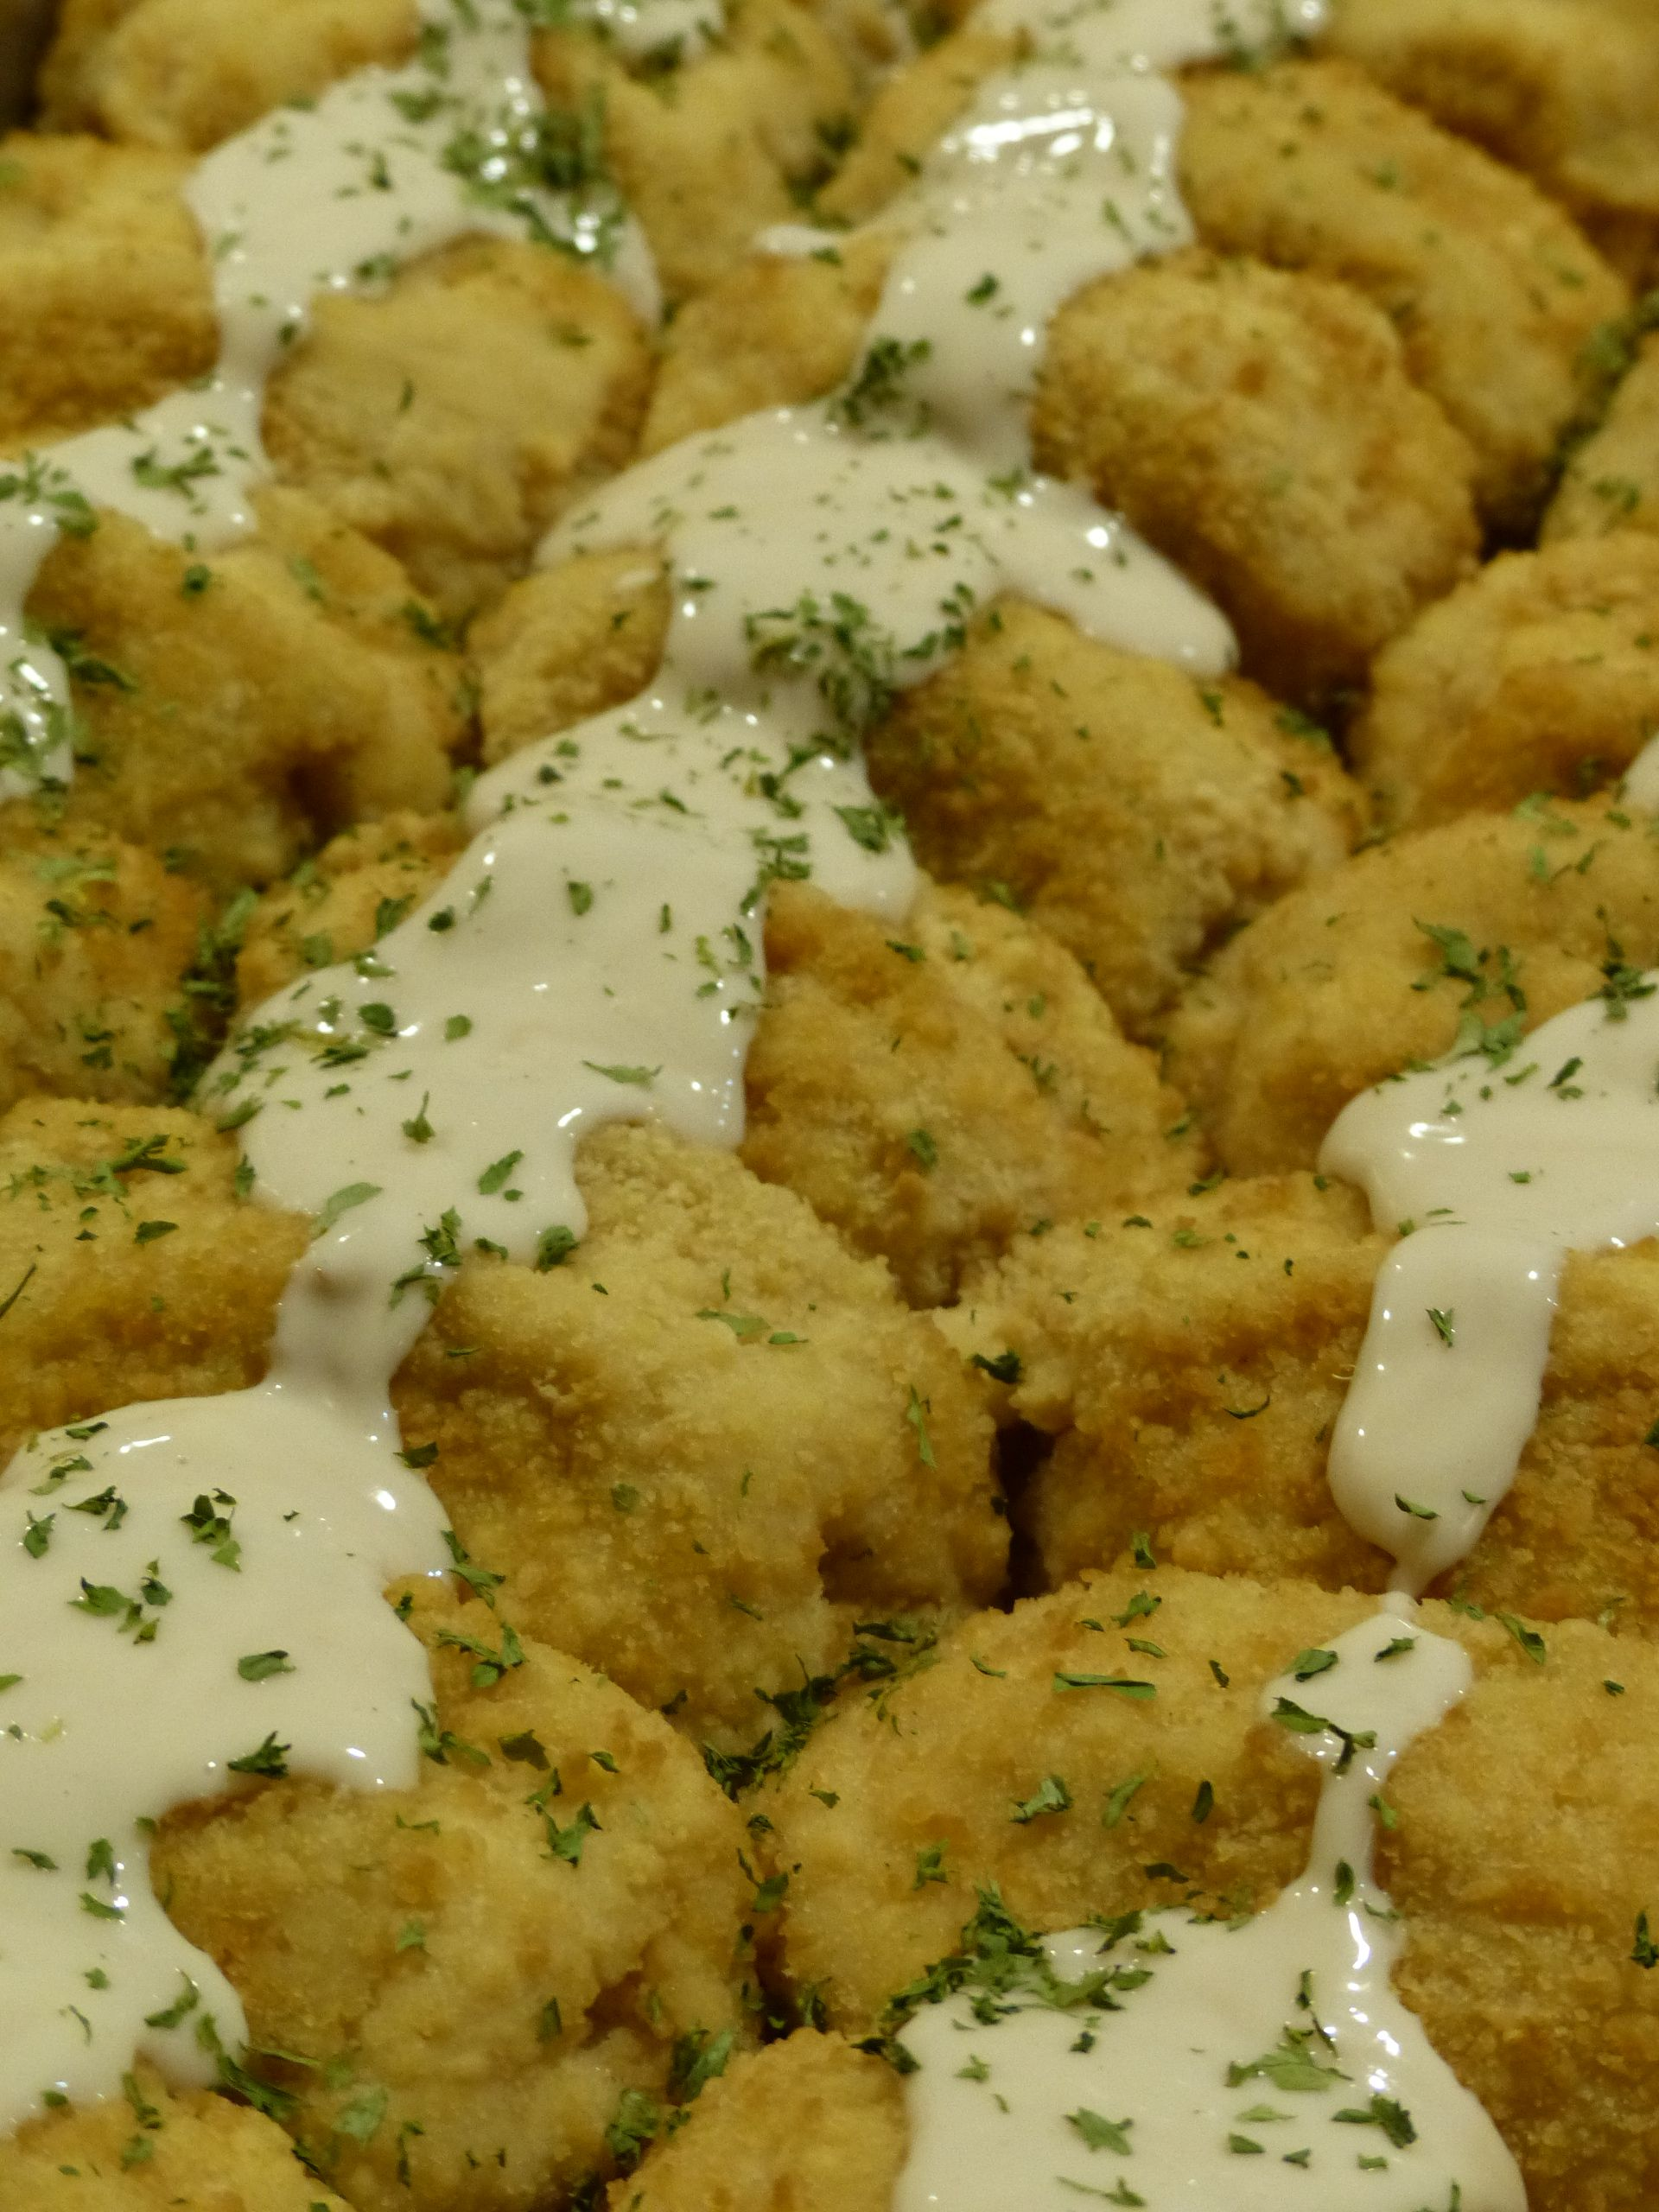 A Taste of Class is the preferred caterer at Lake Lyndsay. Contact us for more information for your event. | caterer@isoc.net | 513-481-3663 | www.atasteofclass.com  Chicken Cordon Bleu